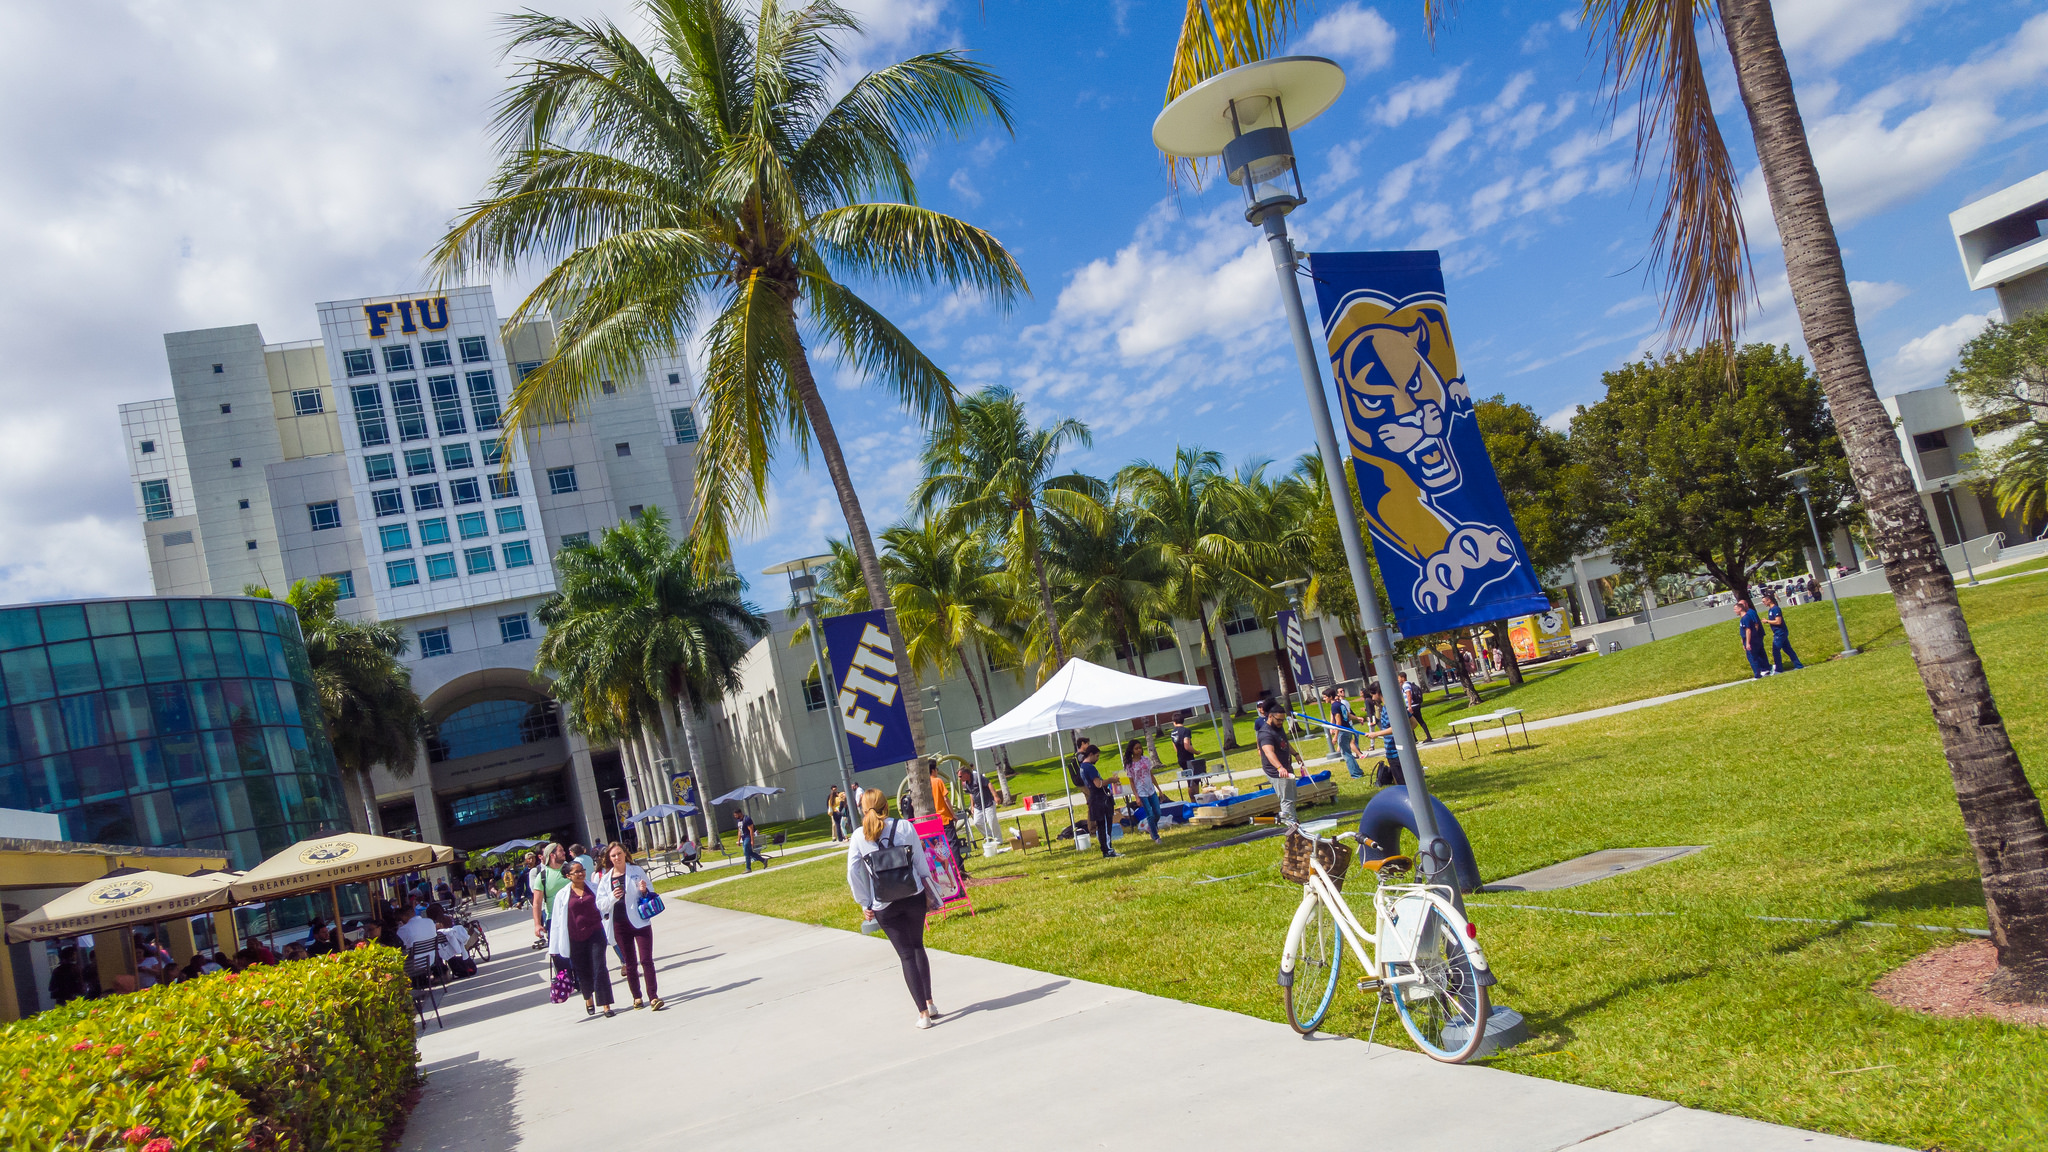 President Rosenberg delivers message on Greek life at FIU